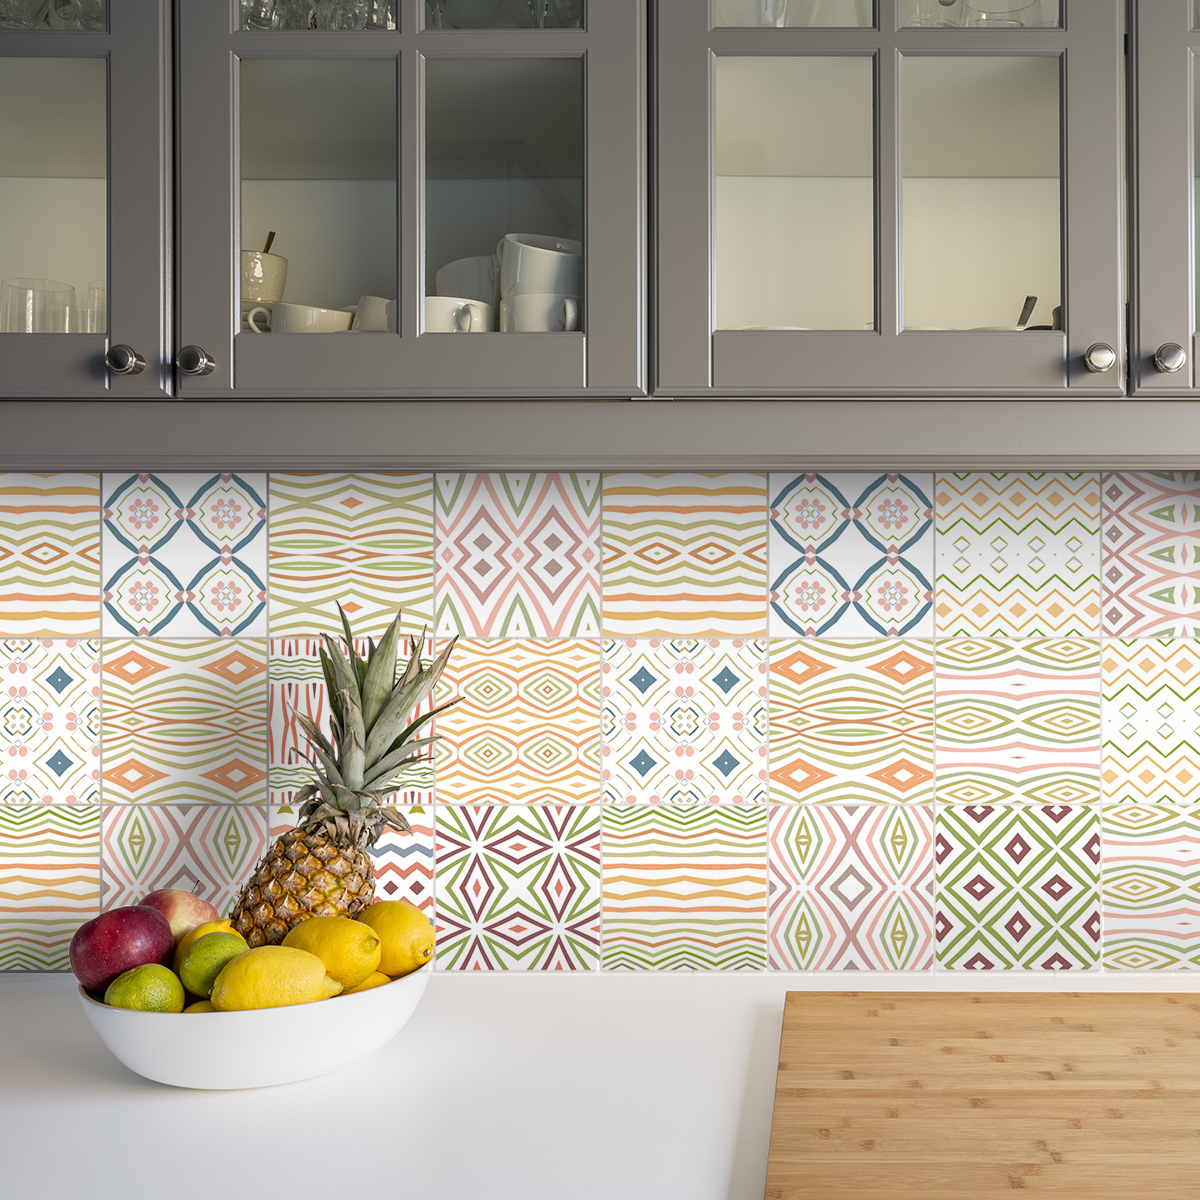 9 stickers carreaux de ciment ethnique arao cuisine. Black Bedroom Furniture Sets. Home Design Ideas